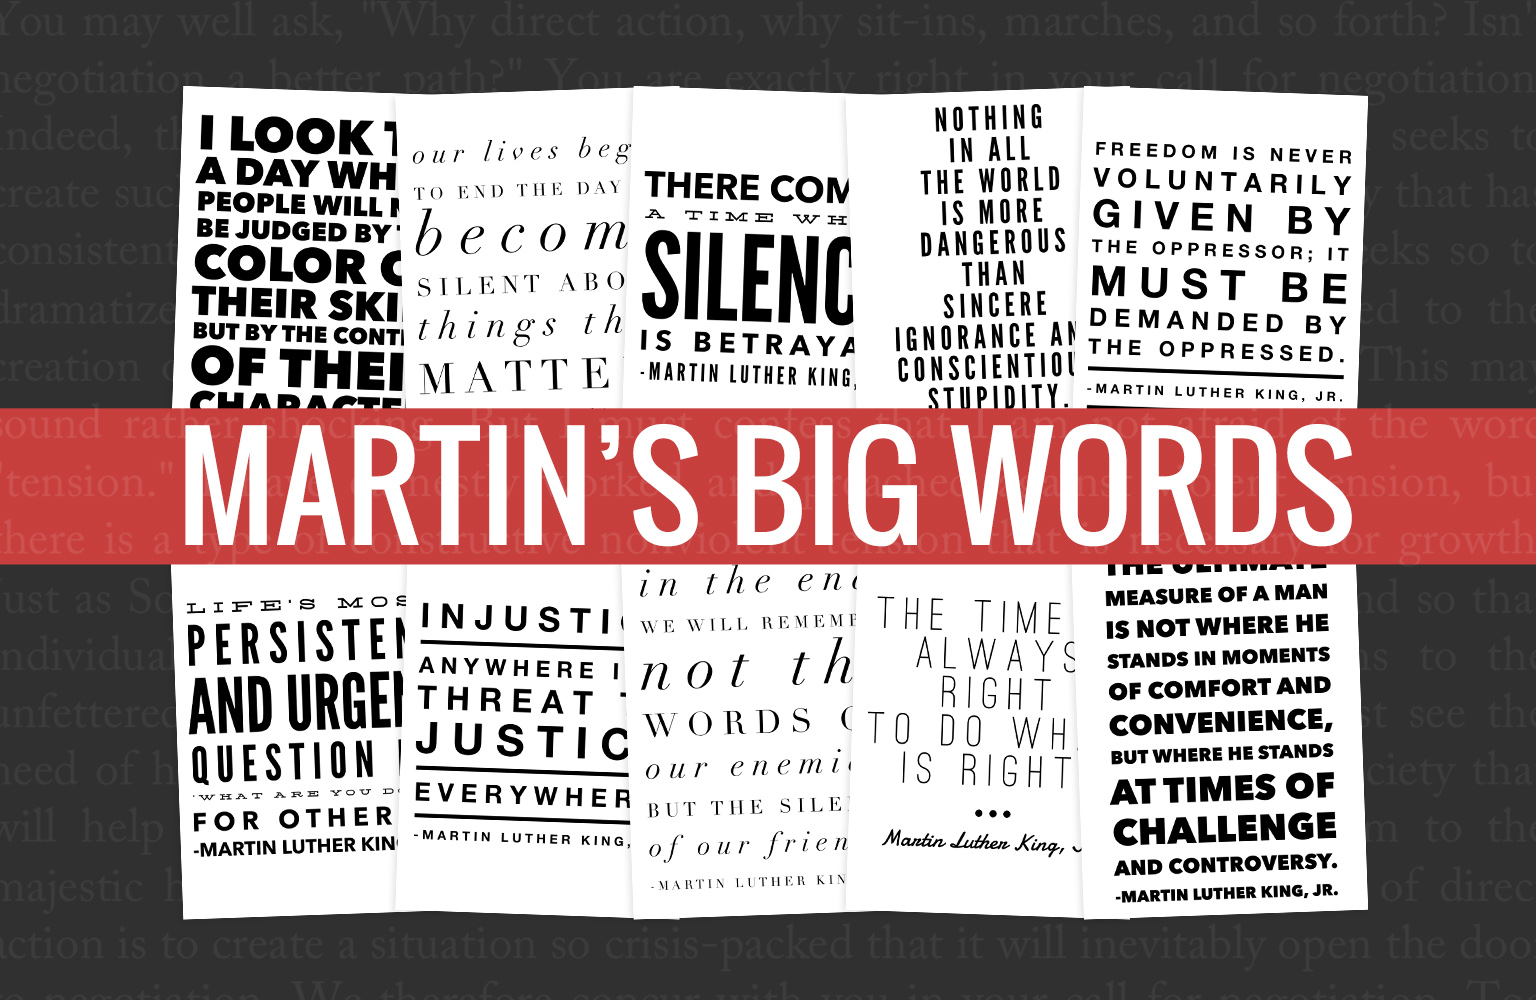 Quotes to get your students talking beyond the dream when learning about Martin Luther King, Jr.